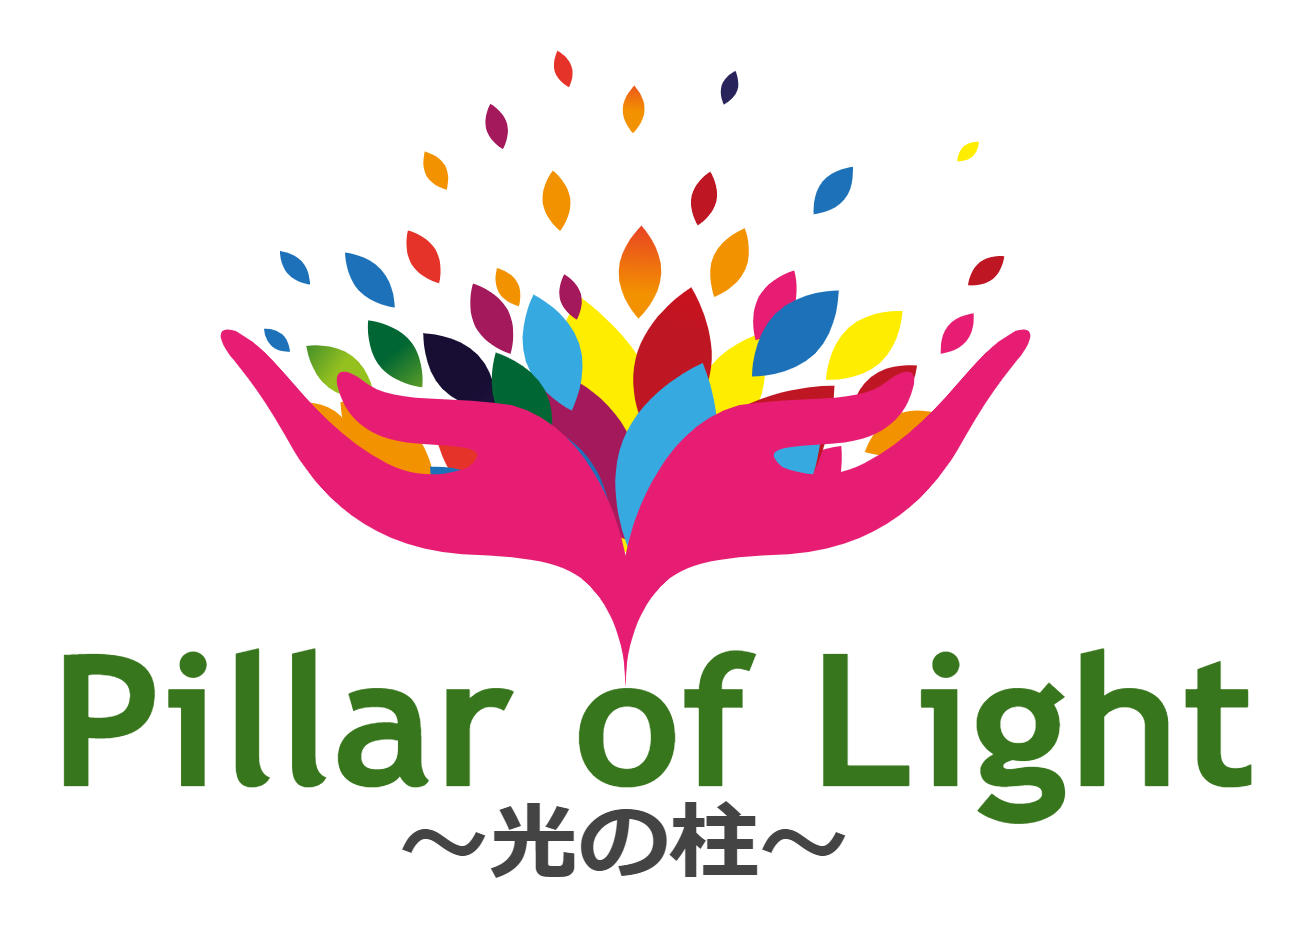 pillar of light